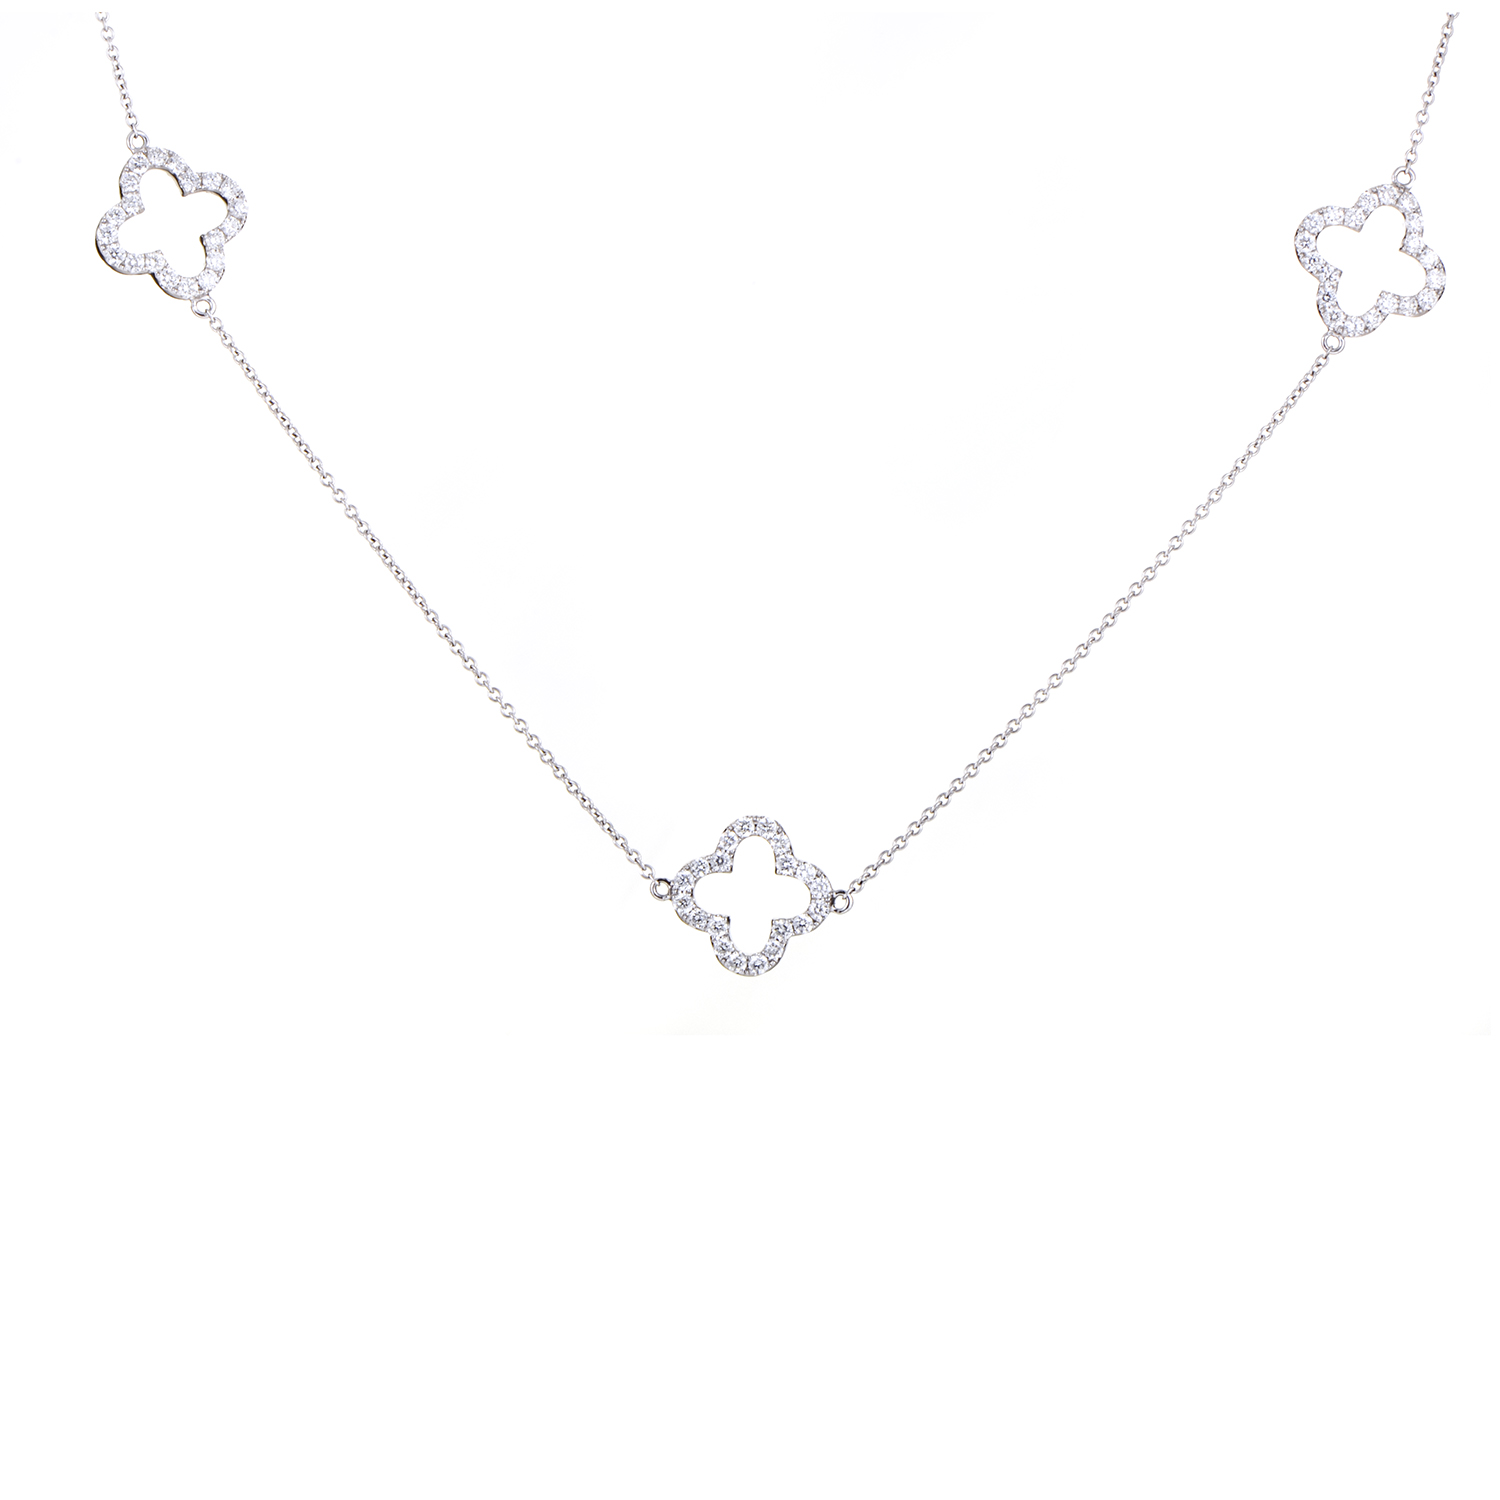 Women's 18K White Gold & Diamond Quatrefoil Sautoir Necklace